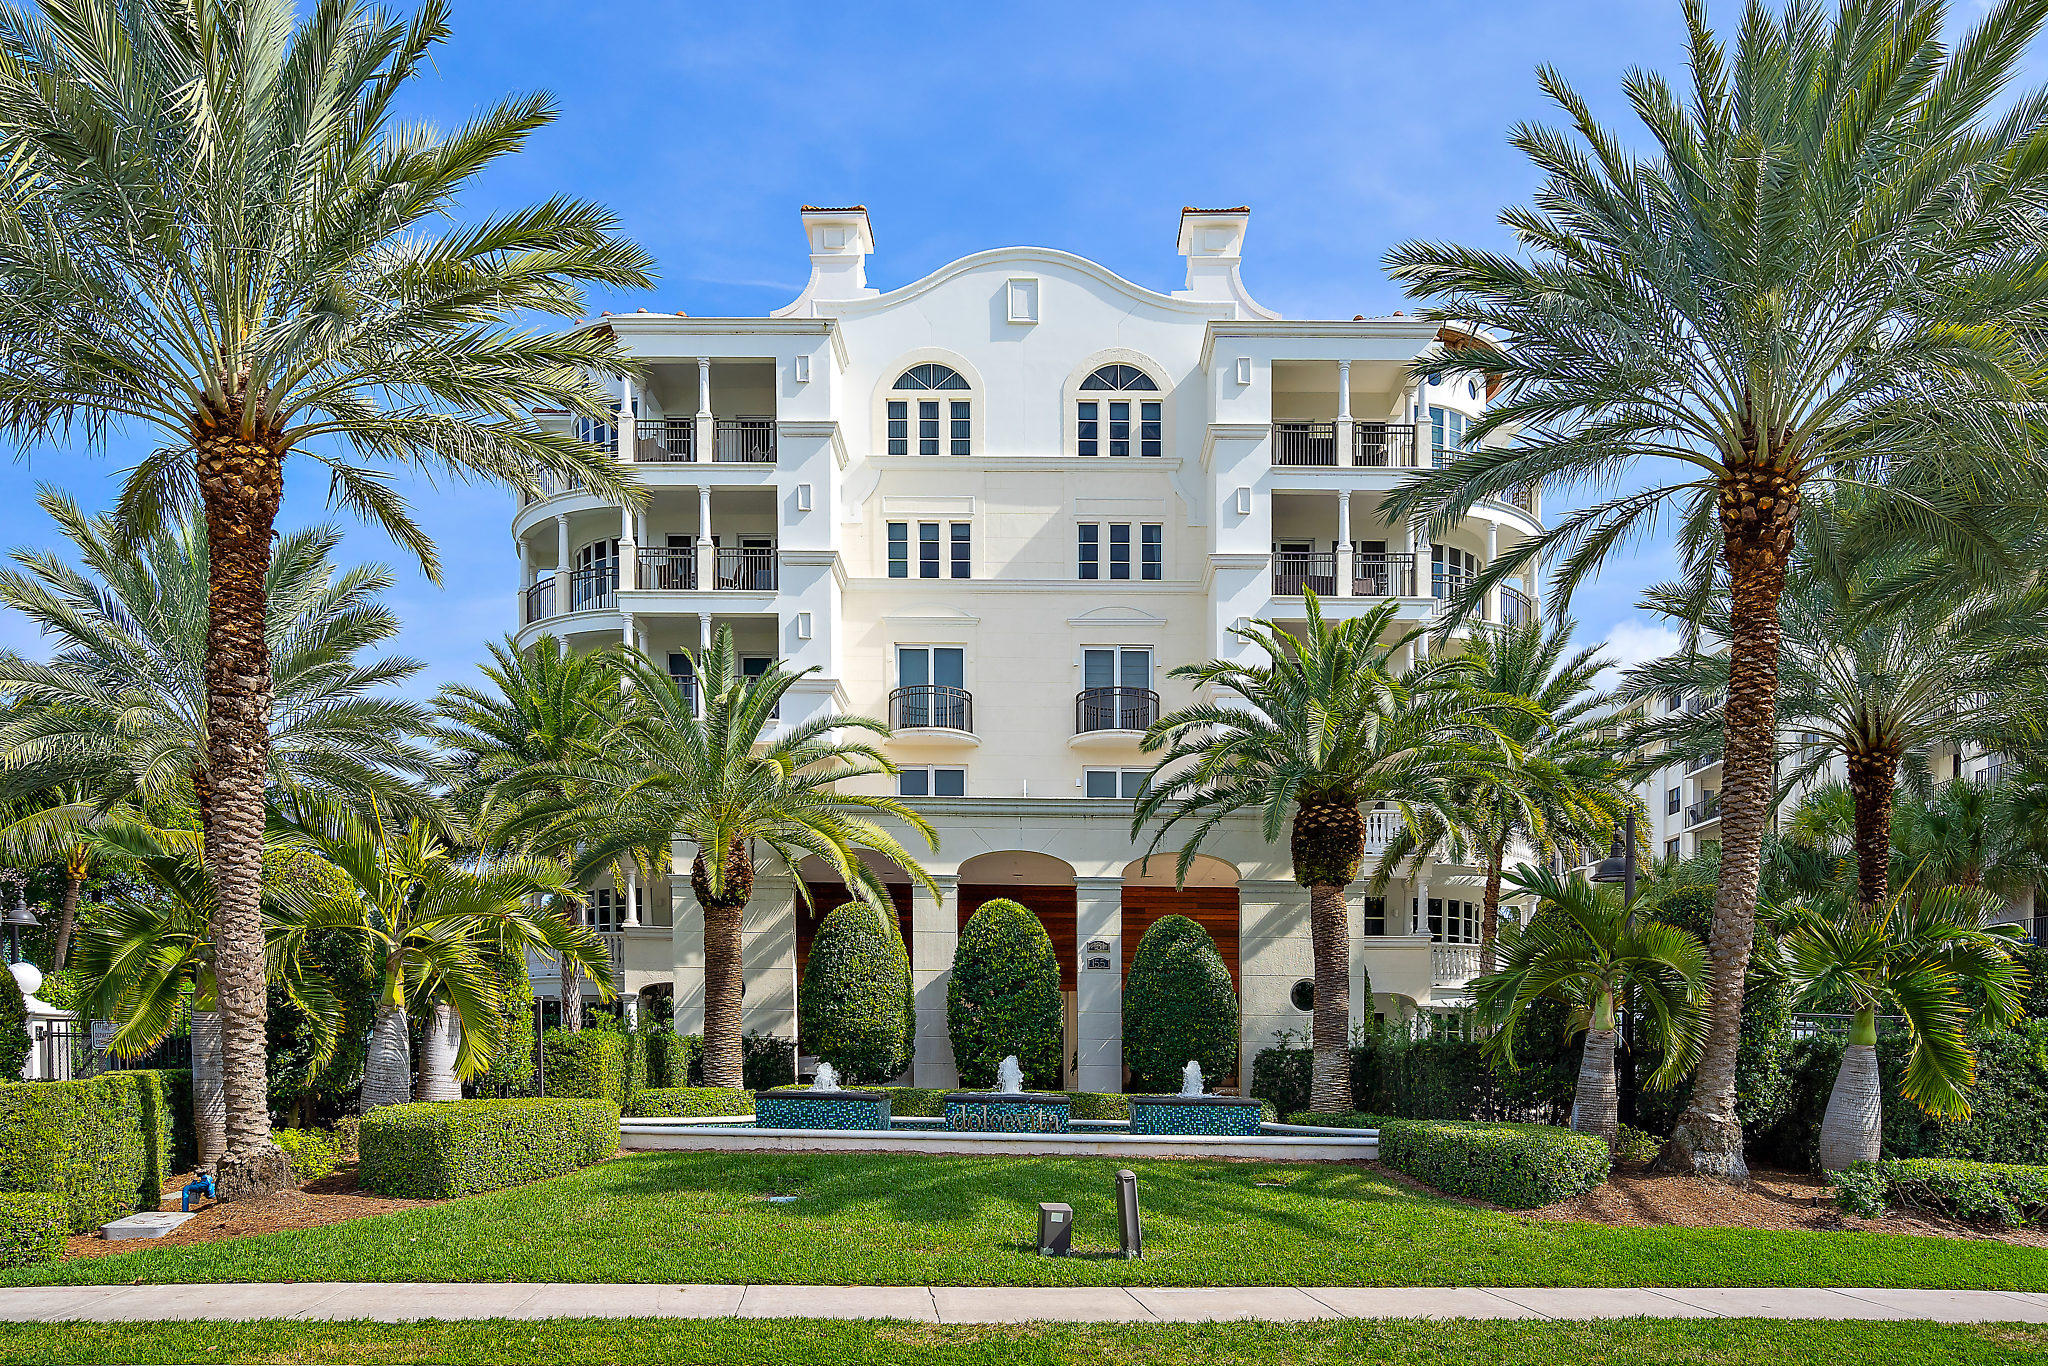 155 S Ocean Avenue, 604 - Palm Beach Shores, Florida